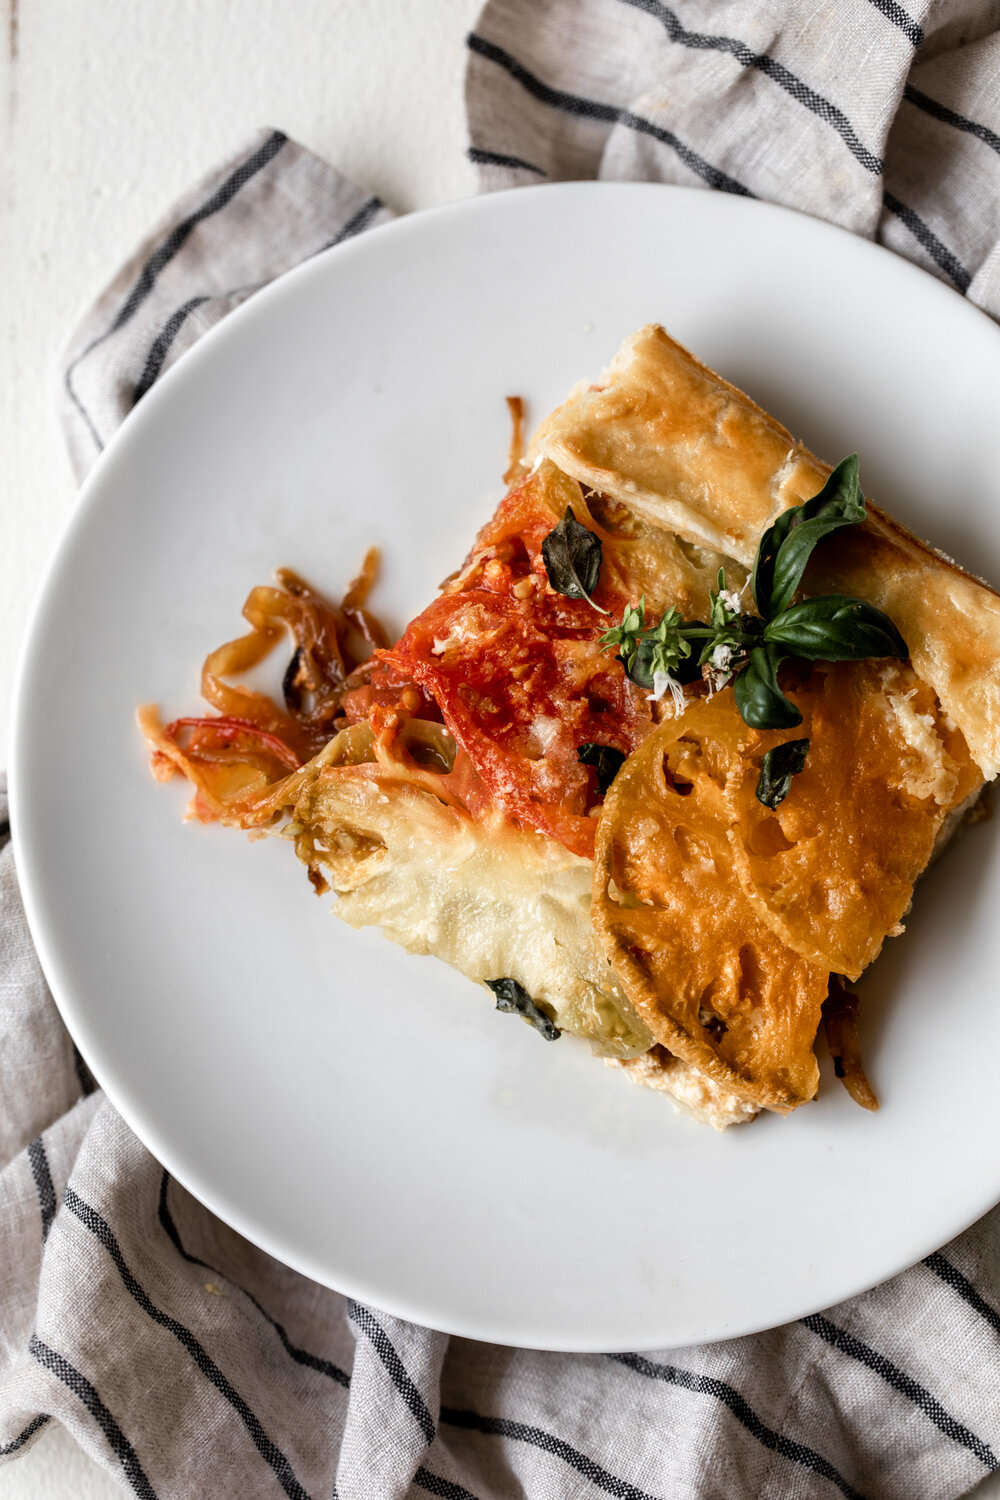 In this tomato galette recipe summer heirloom tomatoes, caramelized onions and ricotta cheese are wrapped in pastry dough for a savory pie